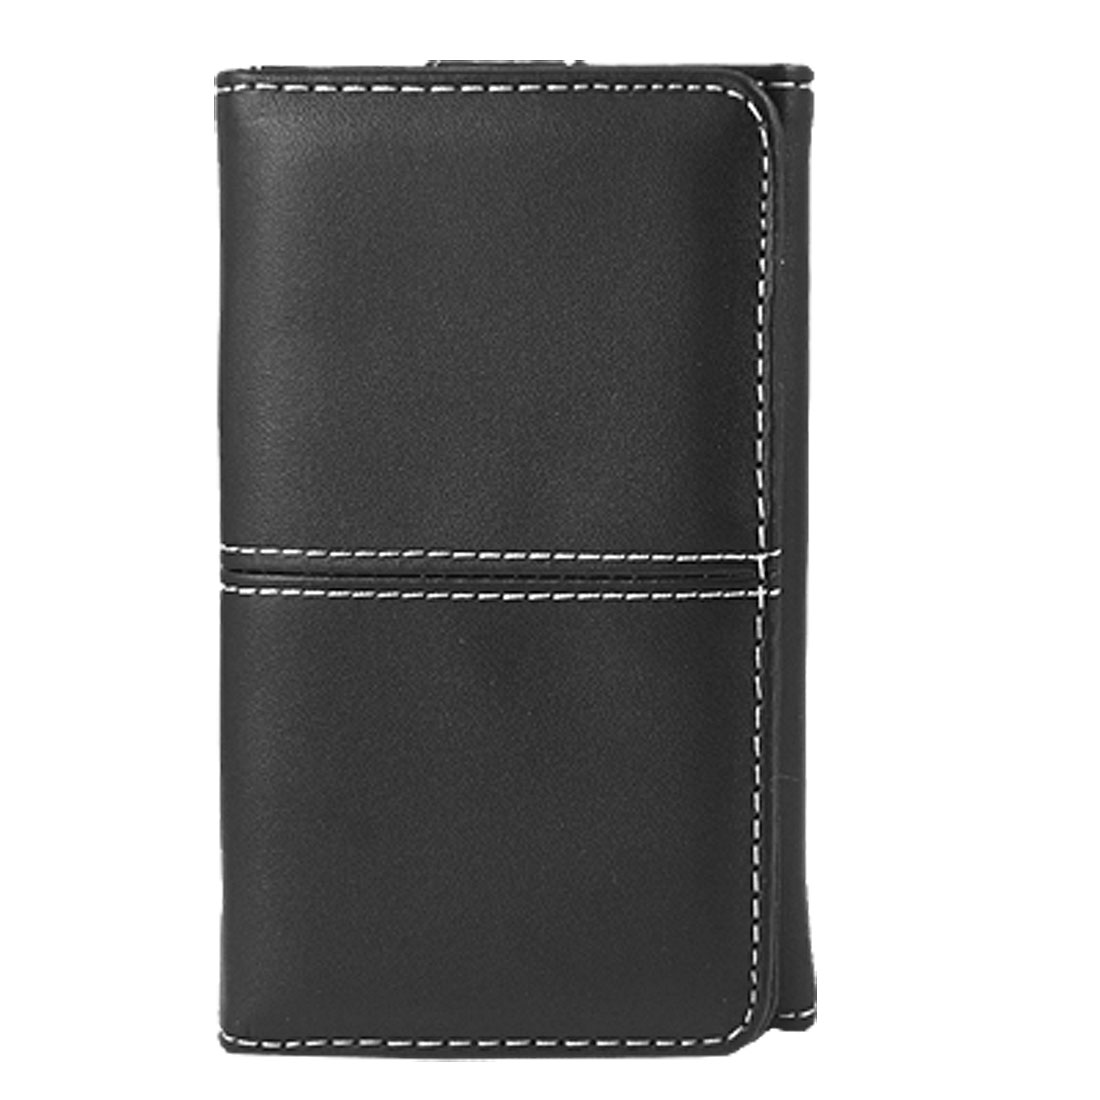 Magnetic Closure Black Faux Leather Pouch Case for iPhone 4 4G